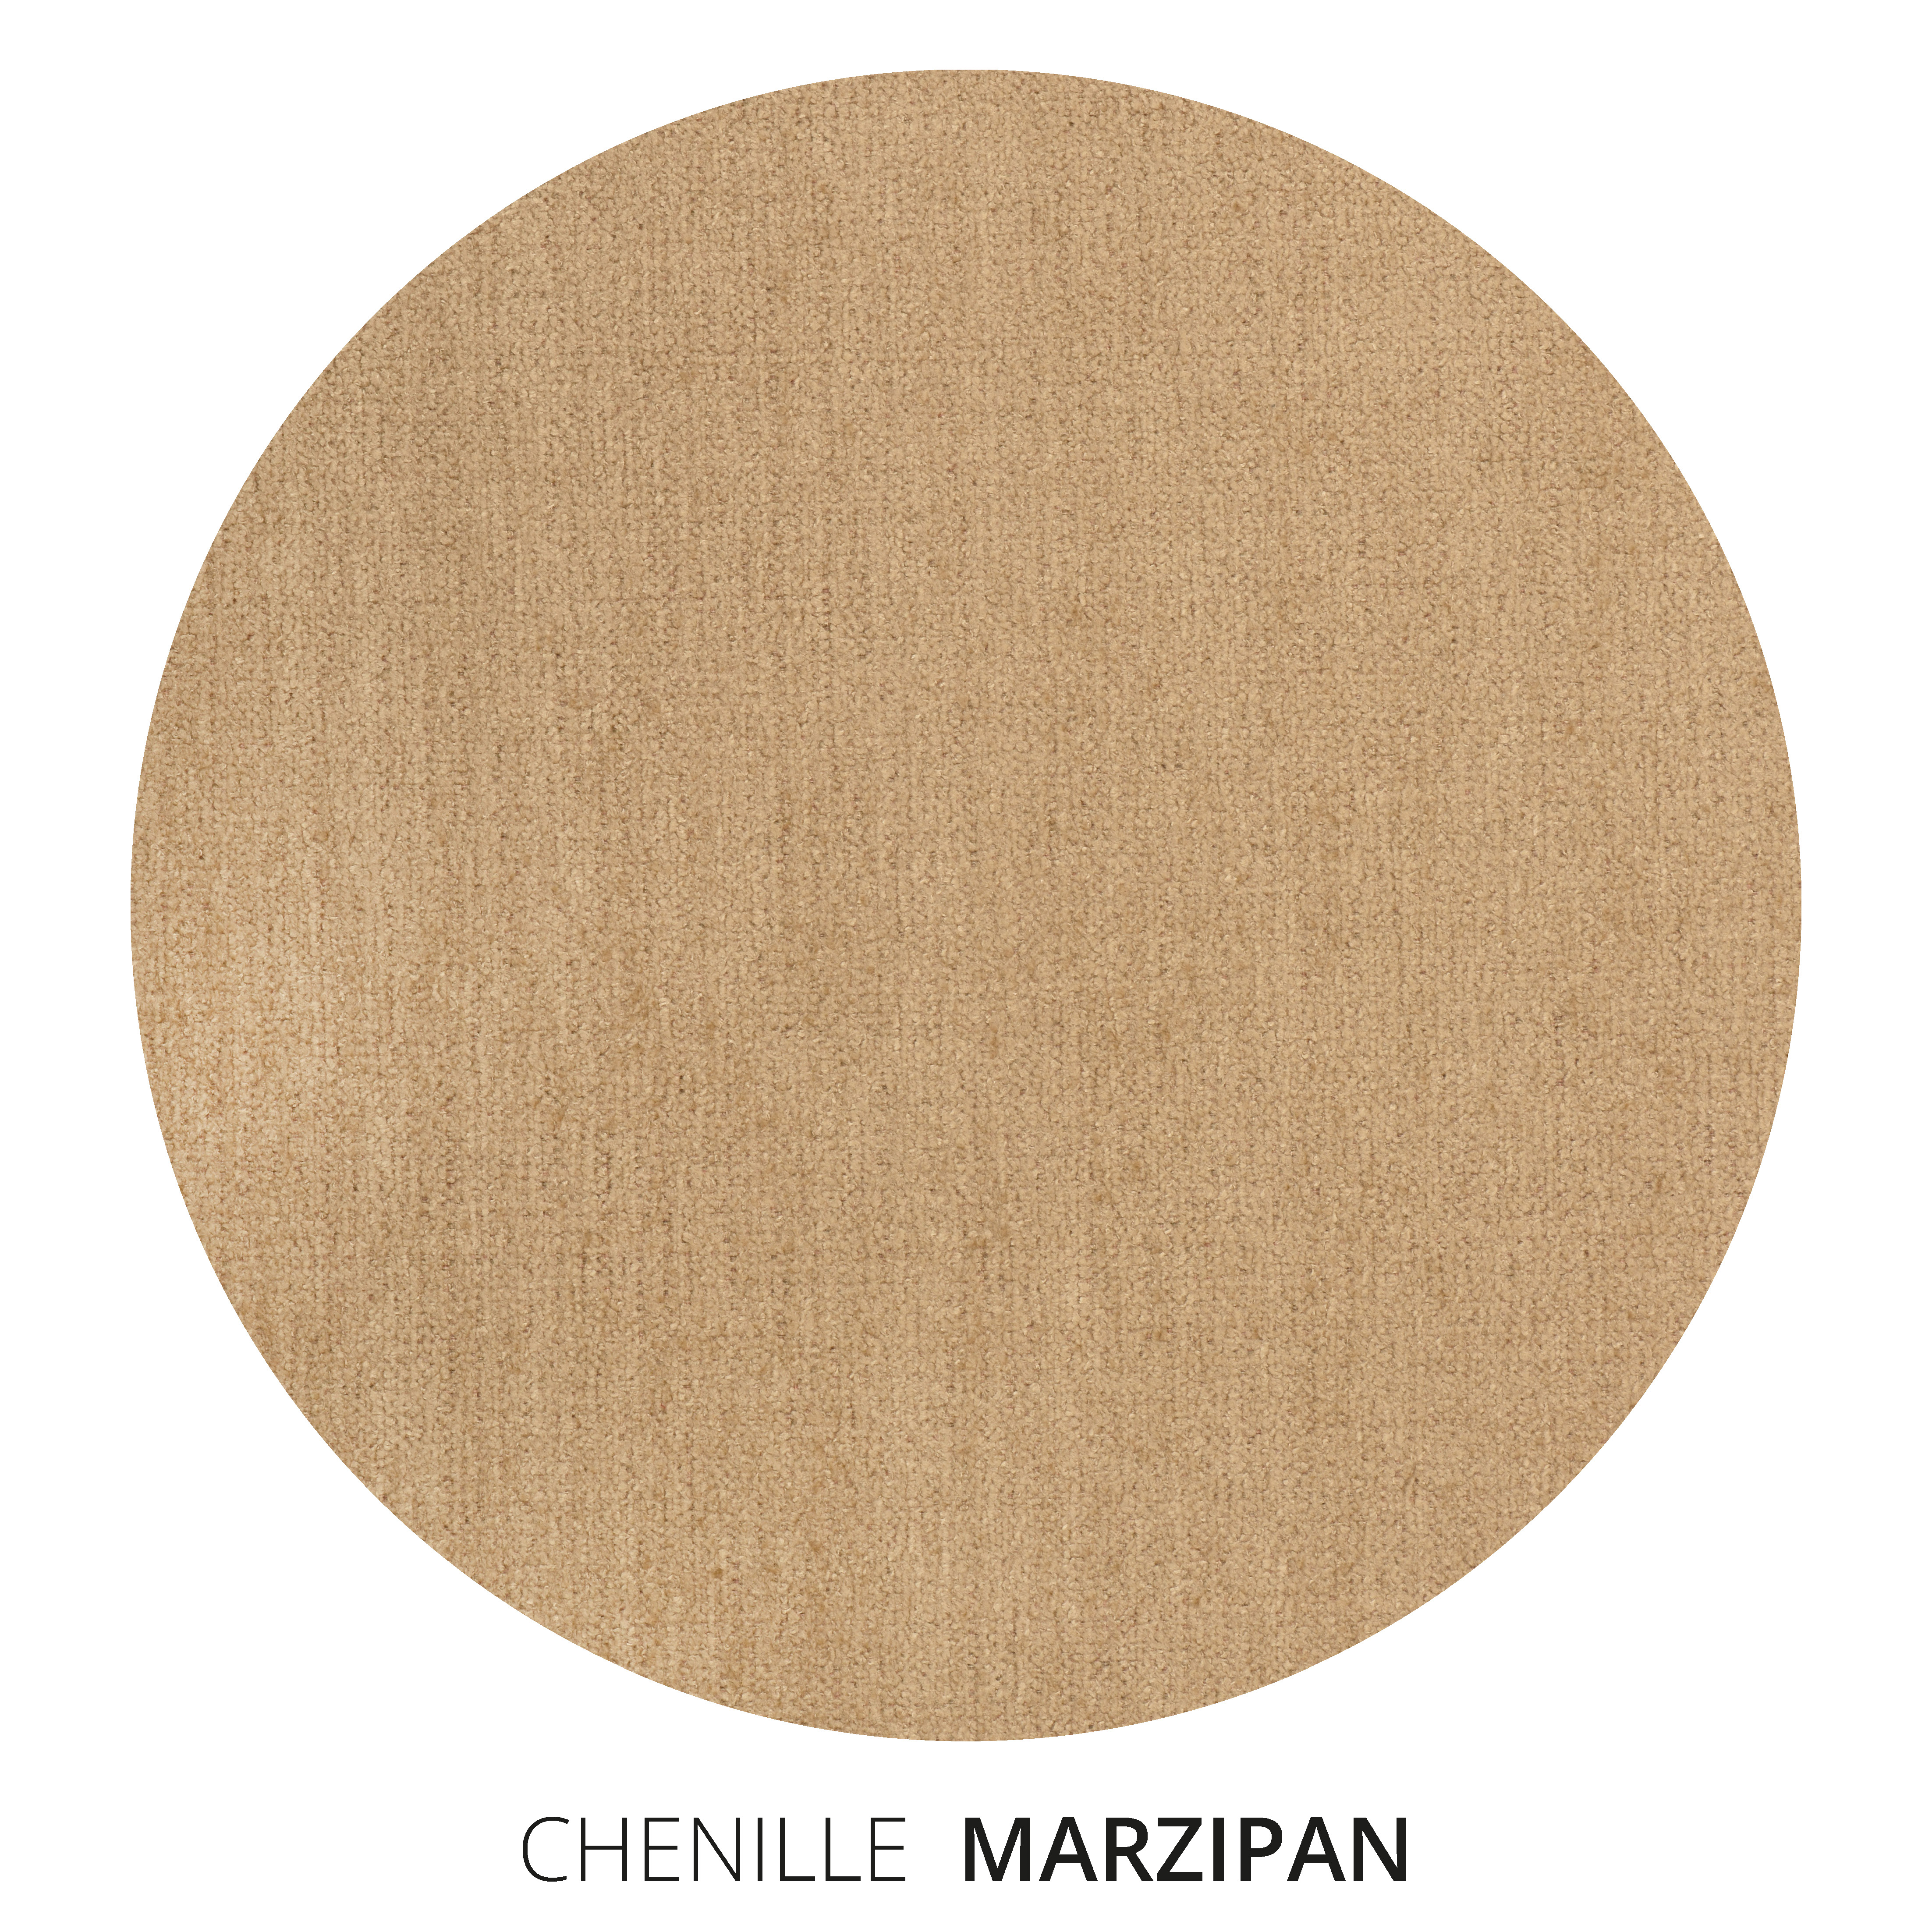 Marzipan Chenille Swatch